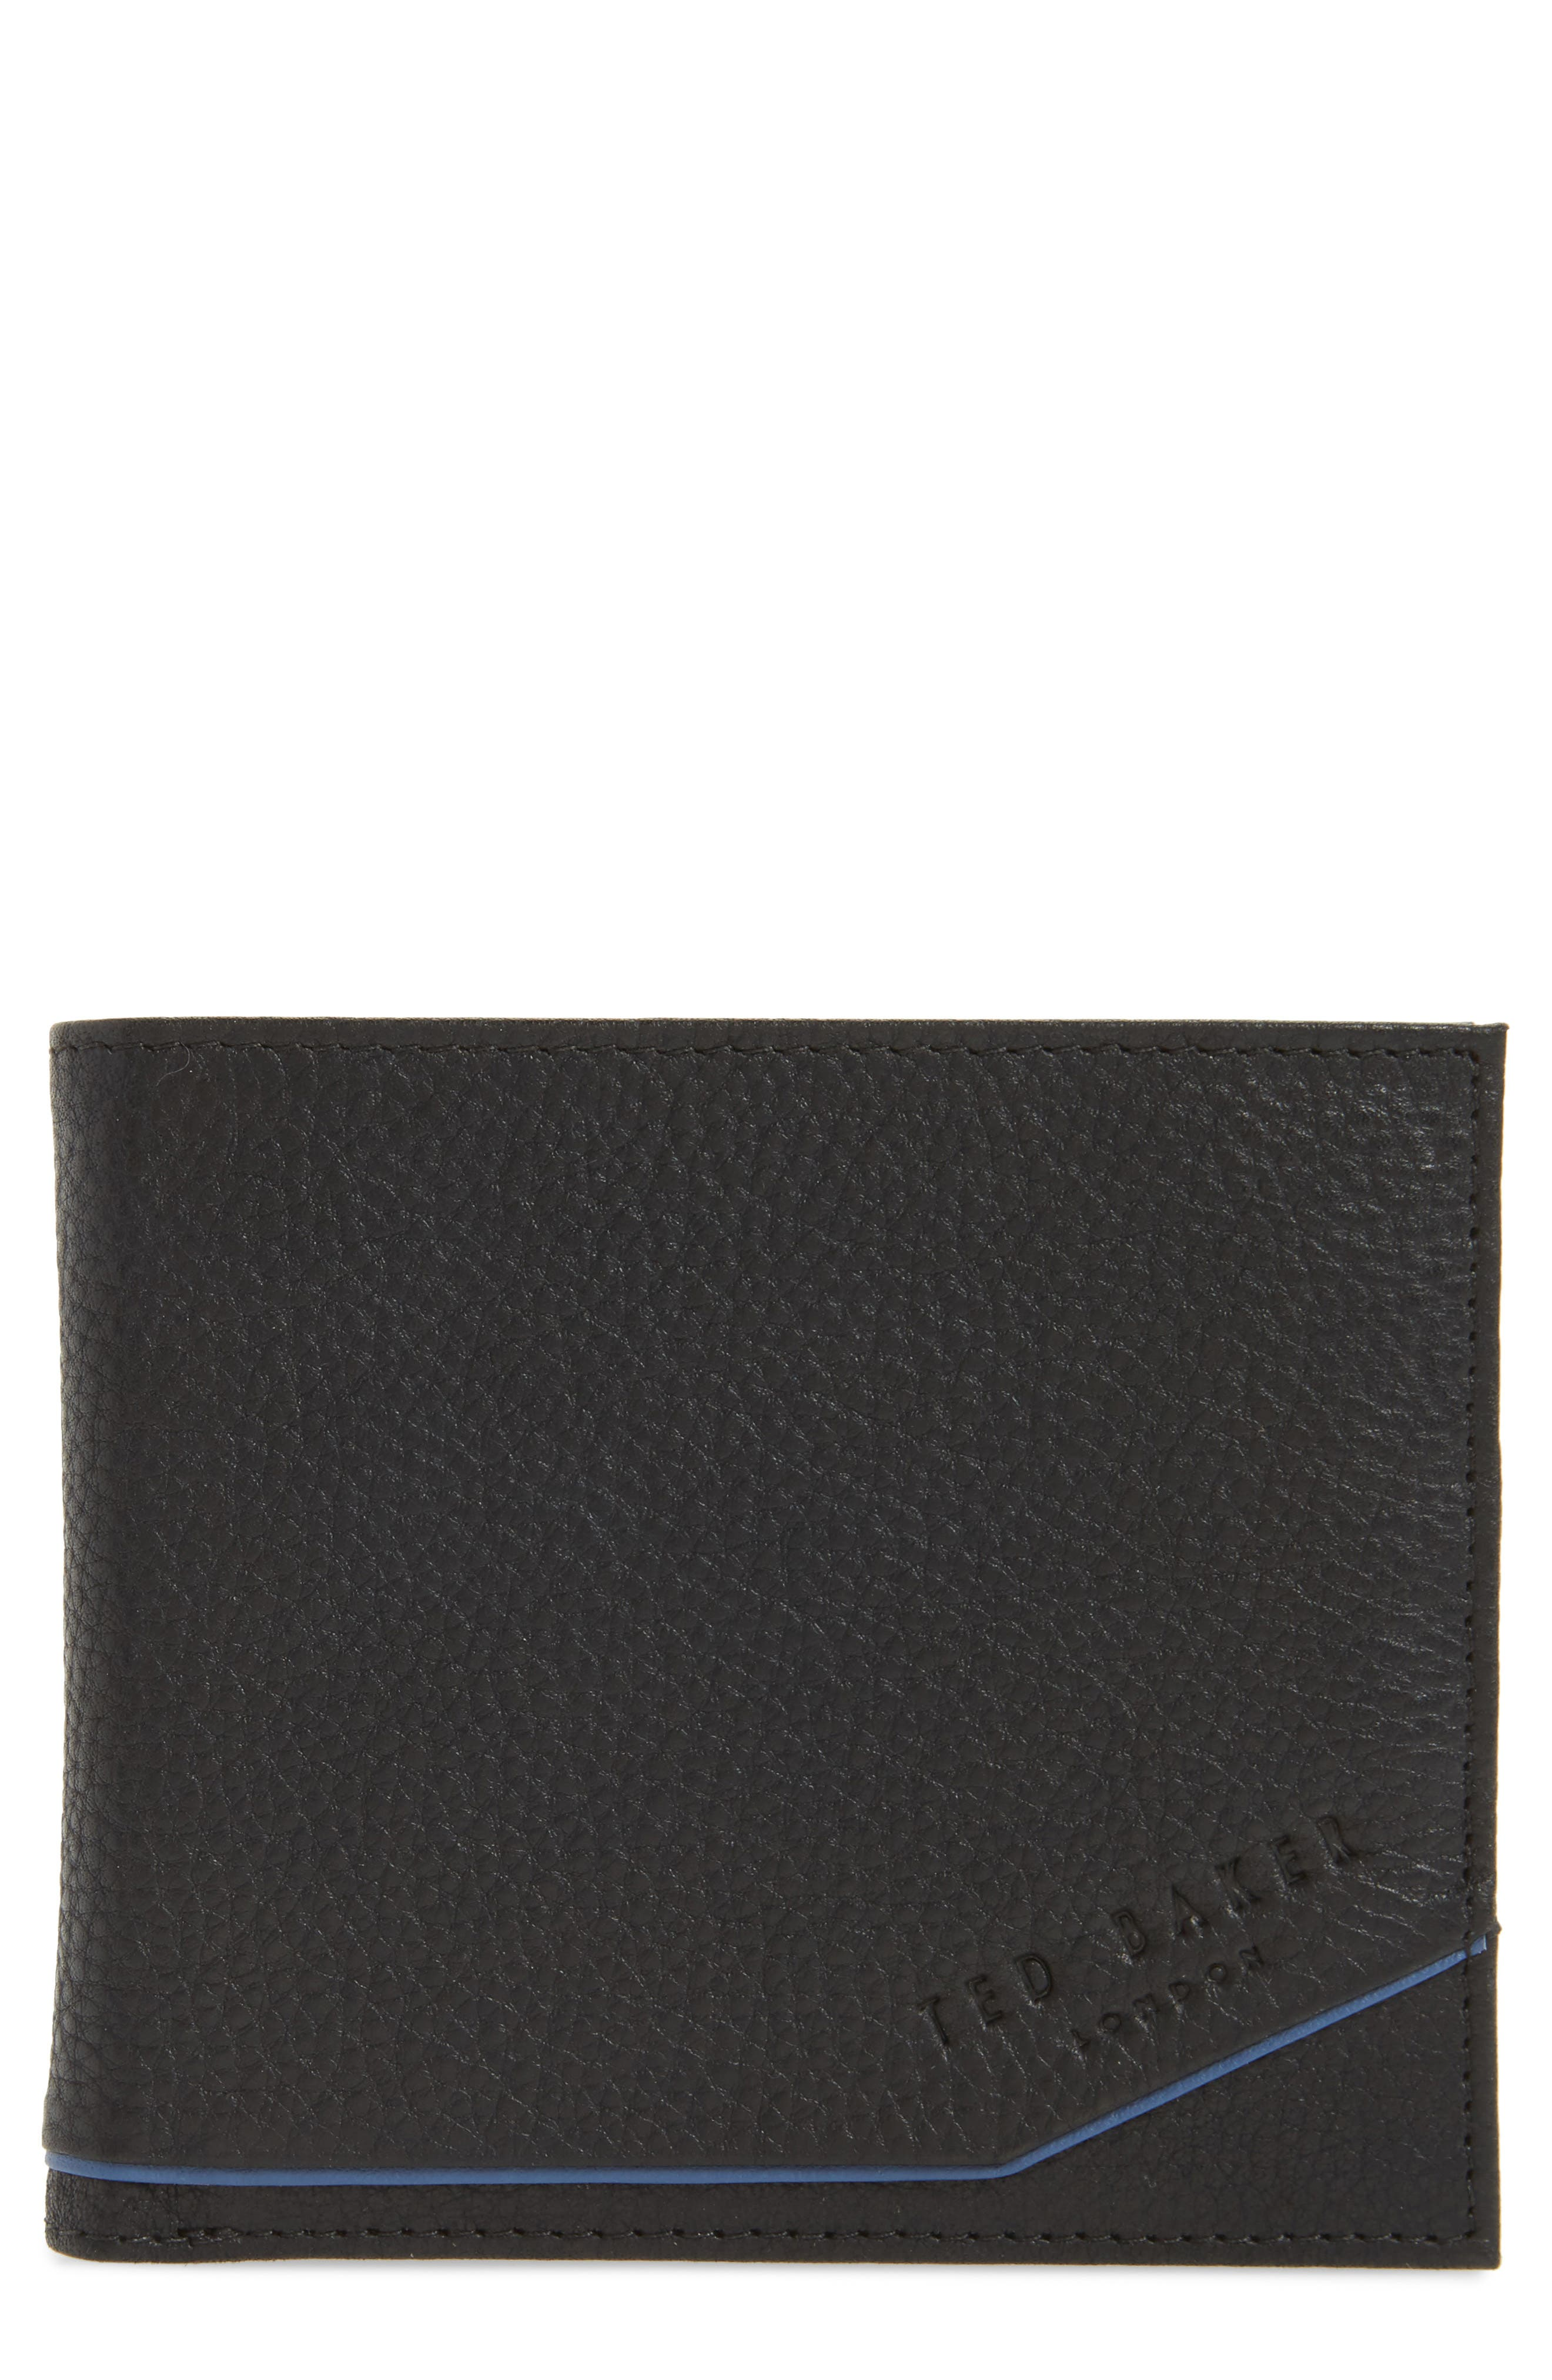 Persia Leather Wallet,                             Main thumbnail 1, color,                             001